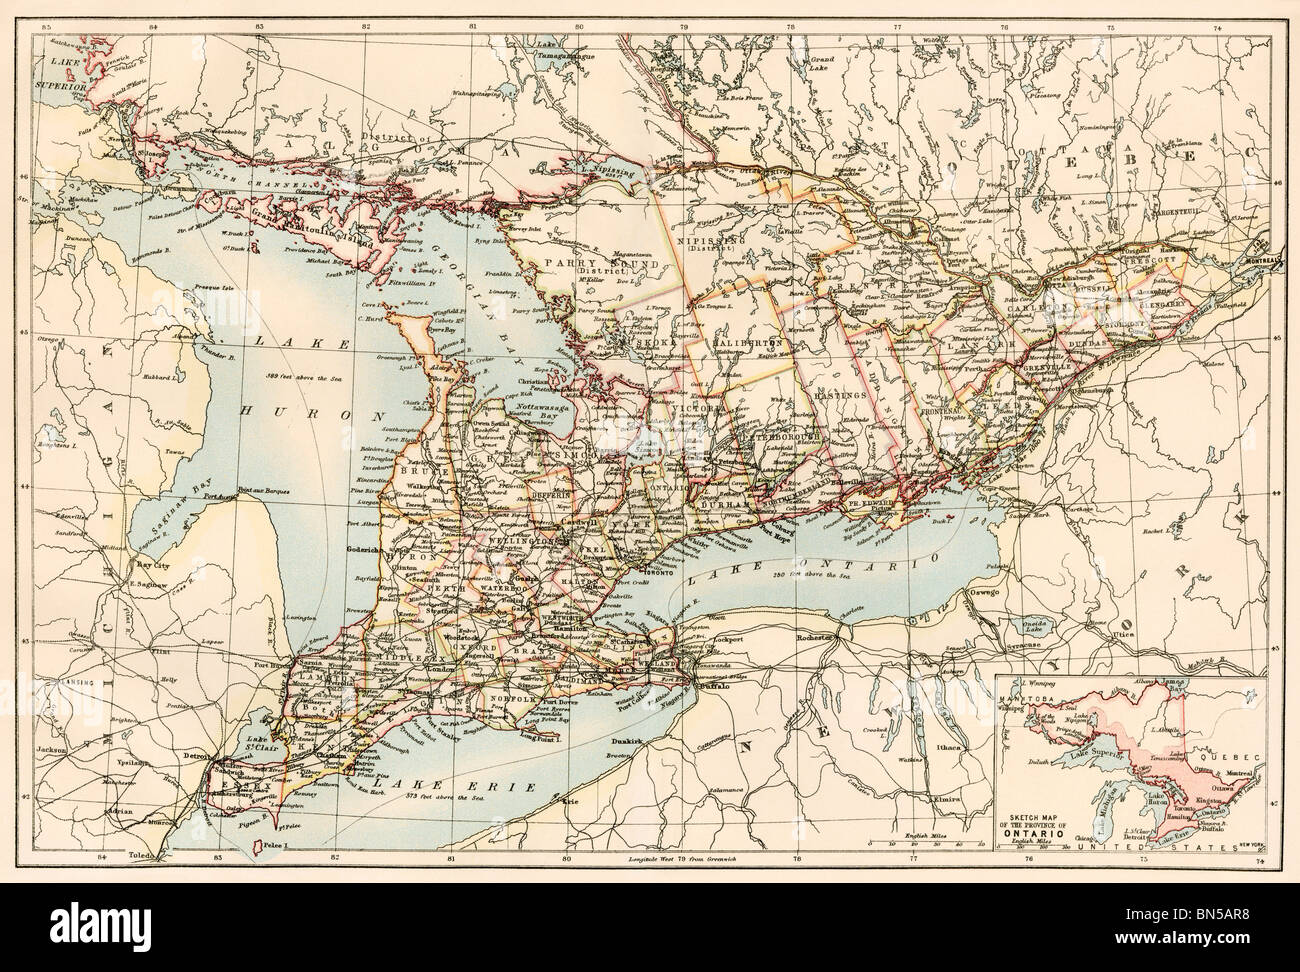 Ontario Map Stock Photos Ontario Map Stock Images Alamy - Map of ontario